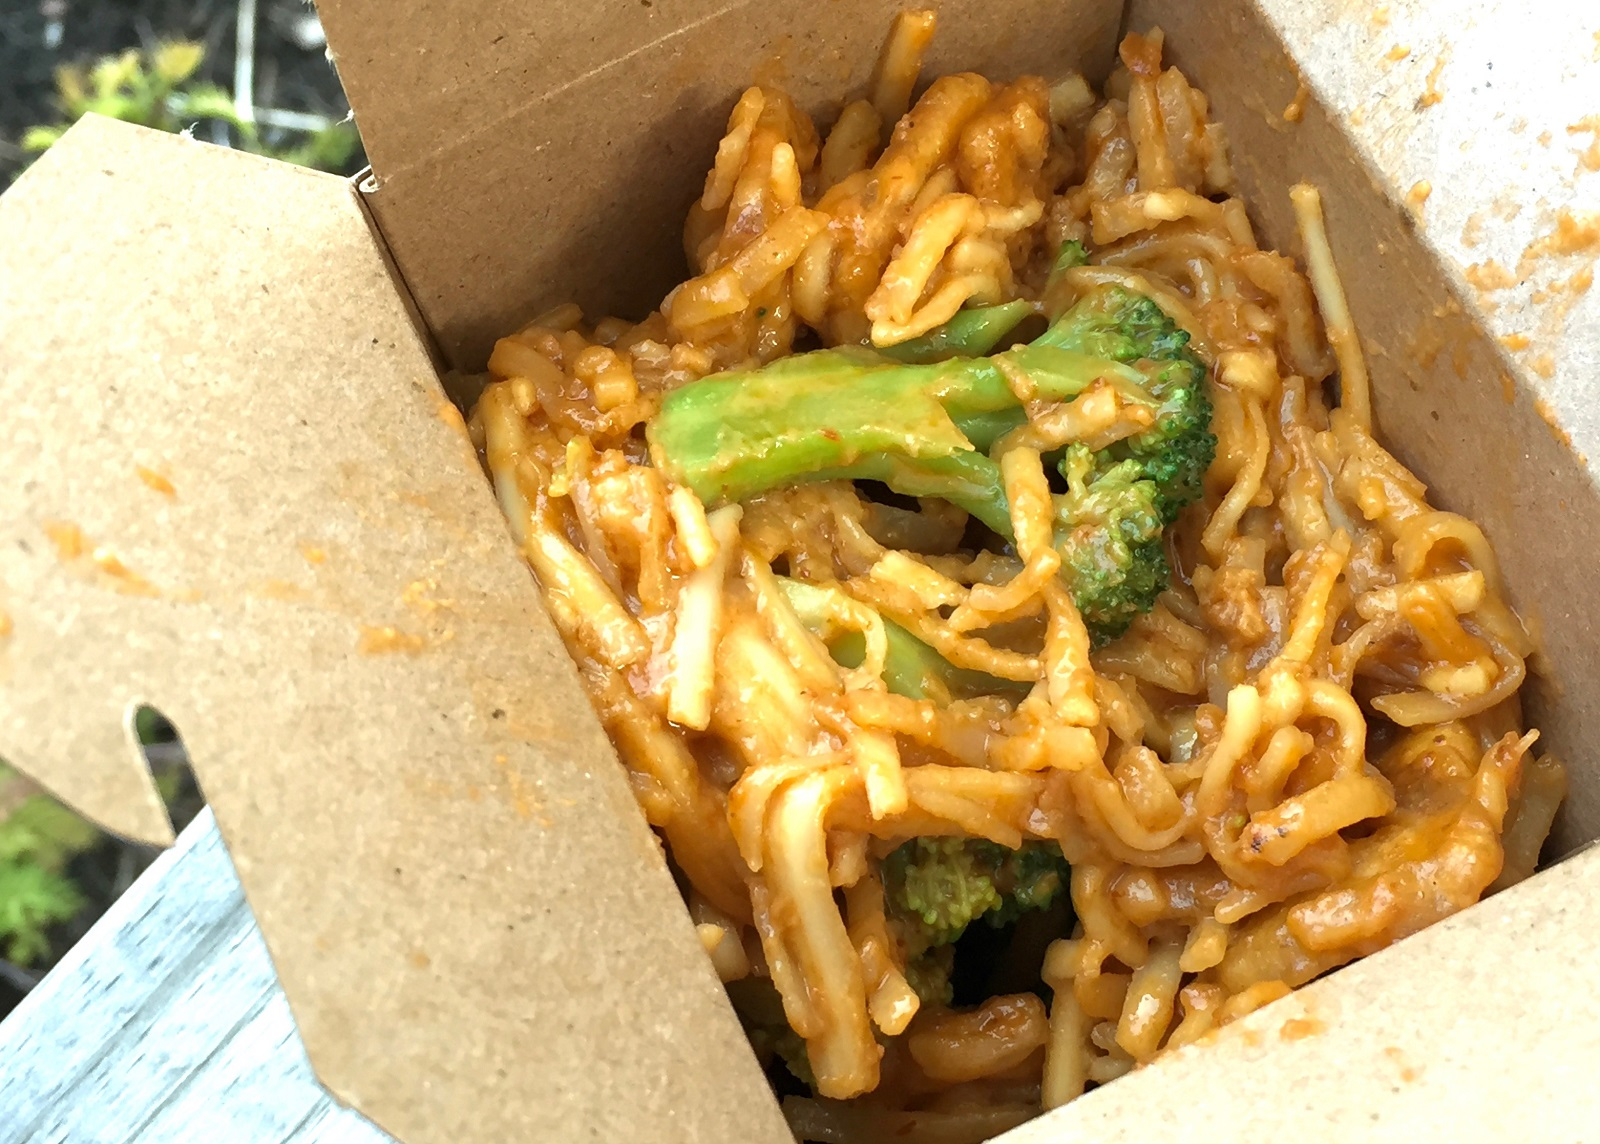 Spicy peanut butter noodles from Gourm-Asian Bistro, $8. (Alex Mikol/Special to The News)